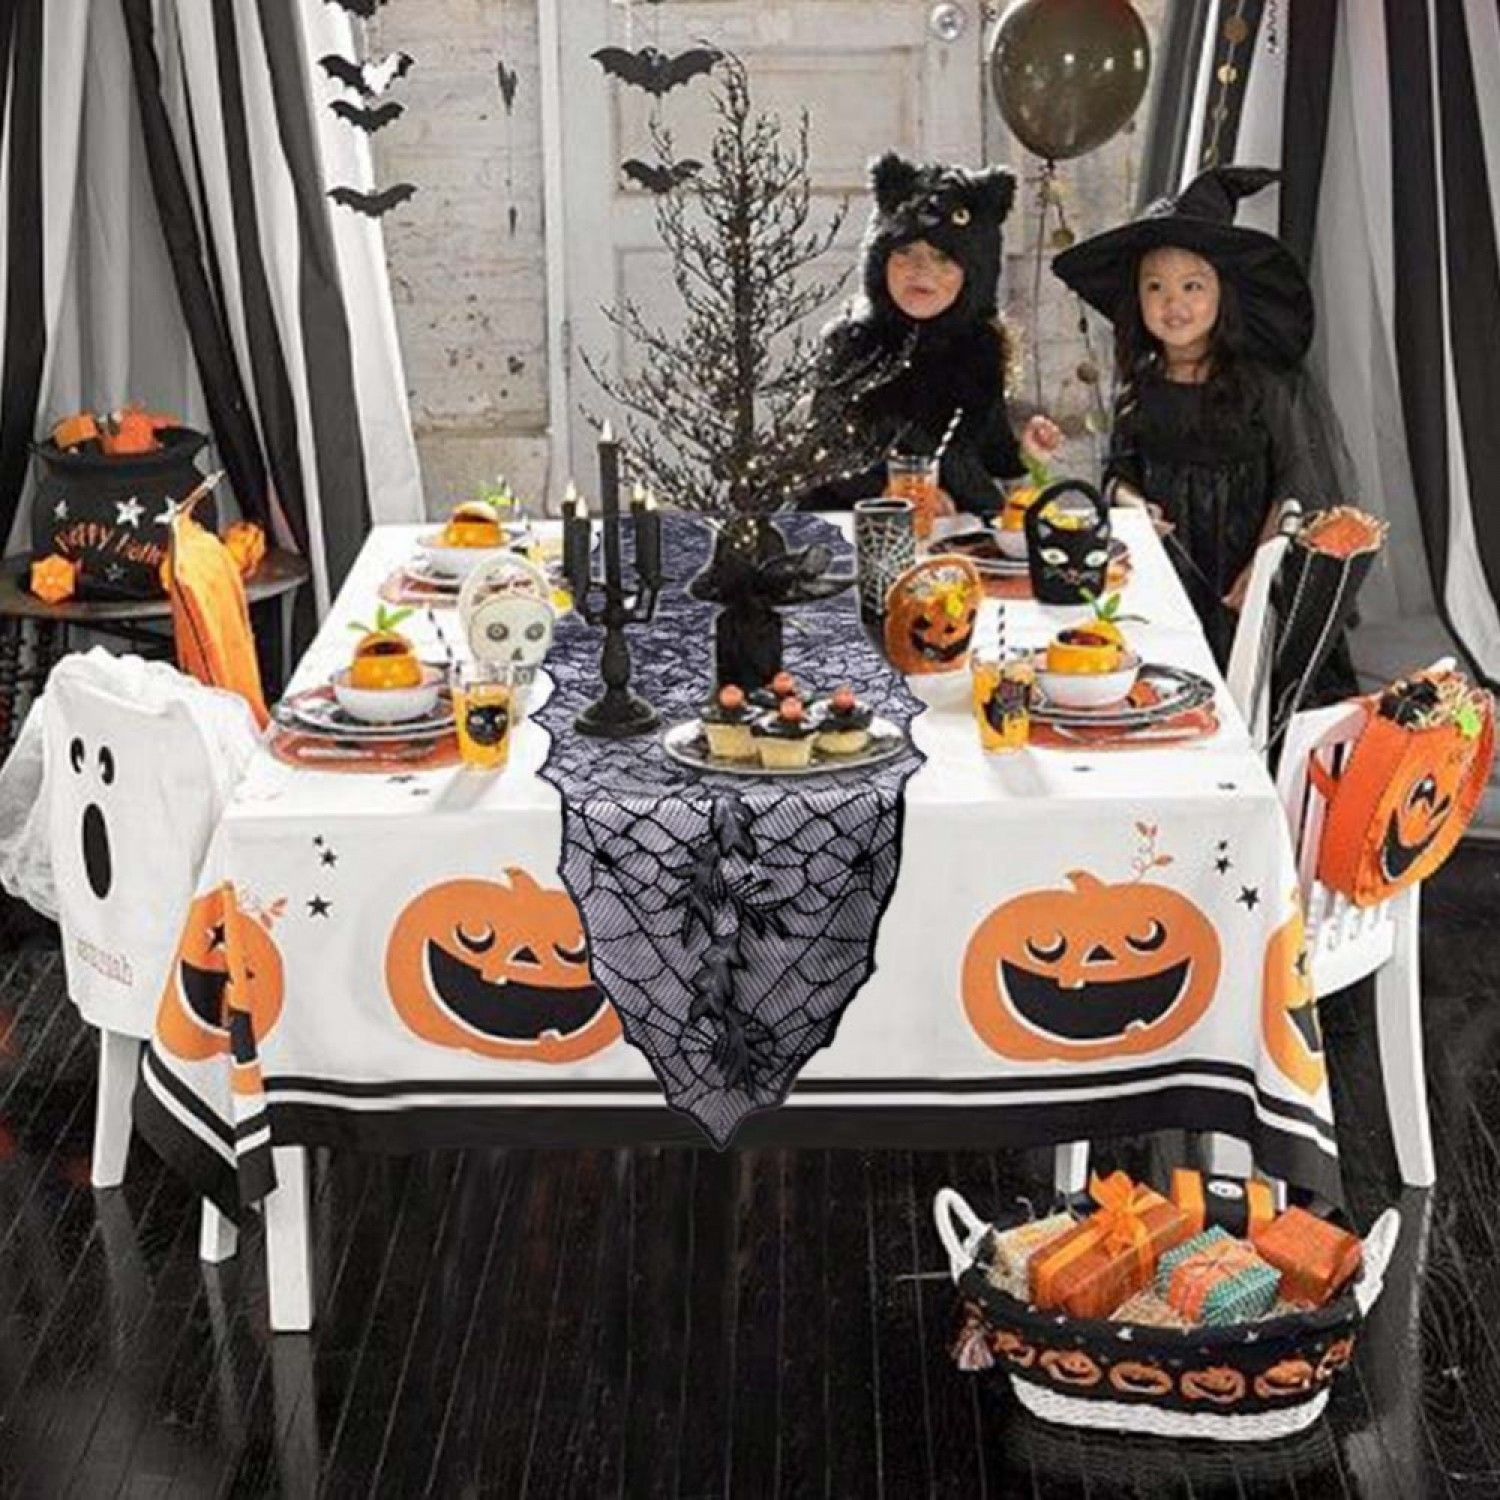 Halloween Party Decor Black Leaf Table Cover 188*55cm Tablecloth Soft Lace Cloth